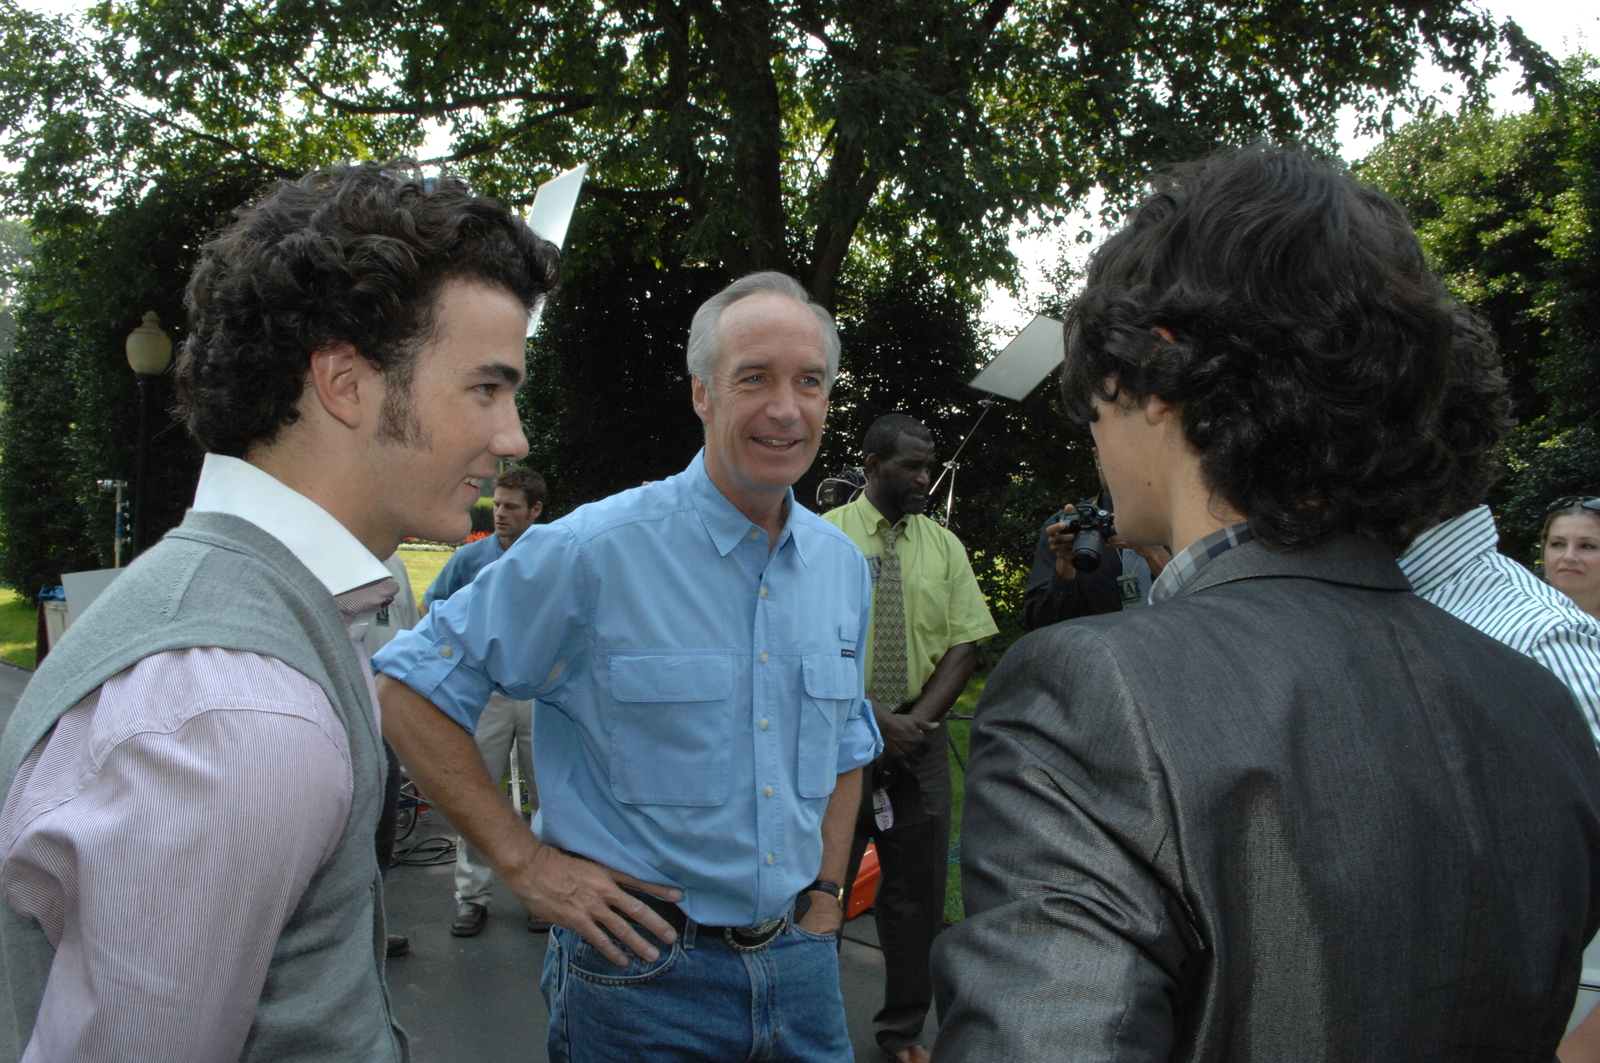 "[Assignment: 48-DPA-08-18-08_SOI_K_Jonas_Bros] Secretary Dirk Kempthorne [and aides joined by pop music stars], the Jonas Brothers--Kevin, Joe, and Nick--for work on Public Service Announcement (PSA) [video, shot on the White House South Lawn, promoting the ""Get Outdoors, It's Yours"" campaign] [48-DPA-08-18-08_SOI_K_Jonas_Bros_IOD_3085.JPG]"